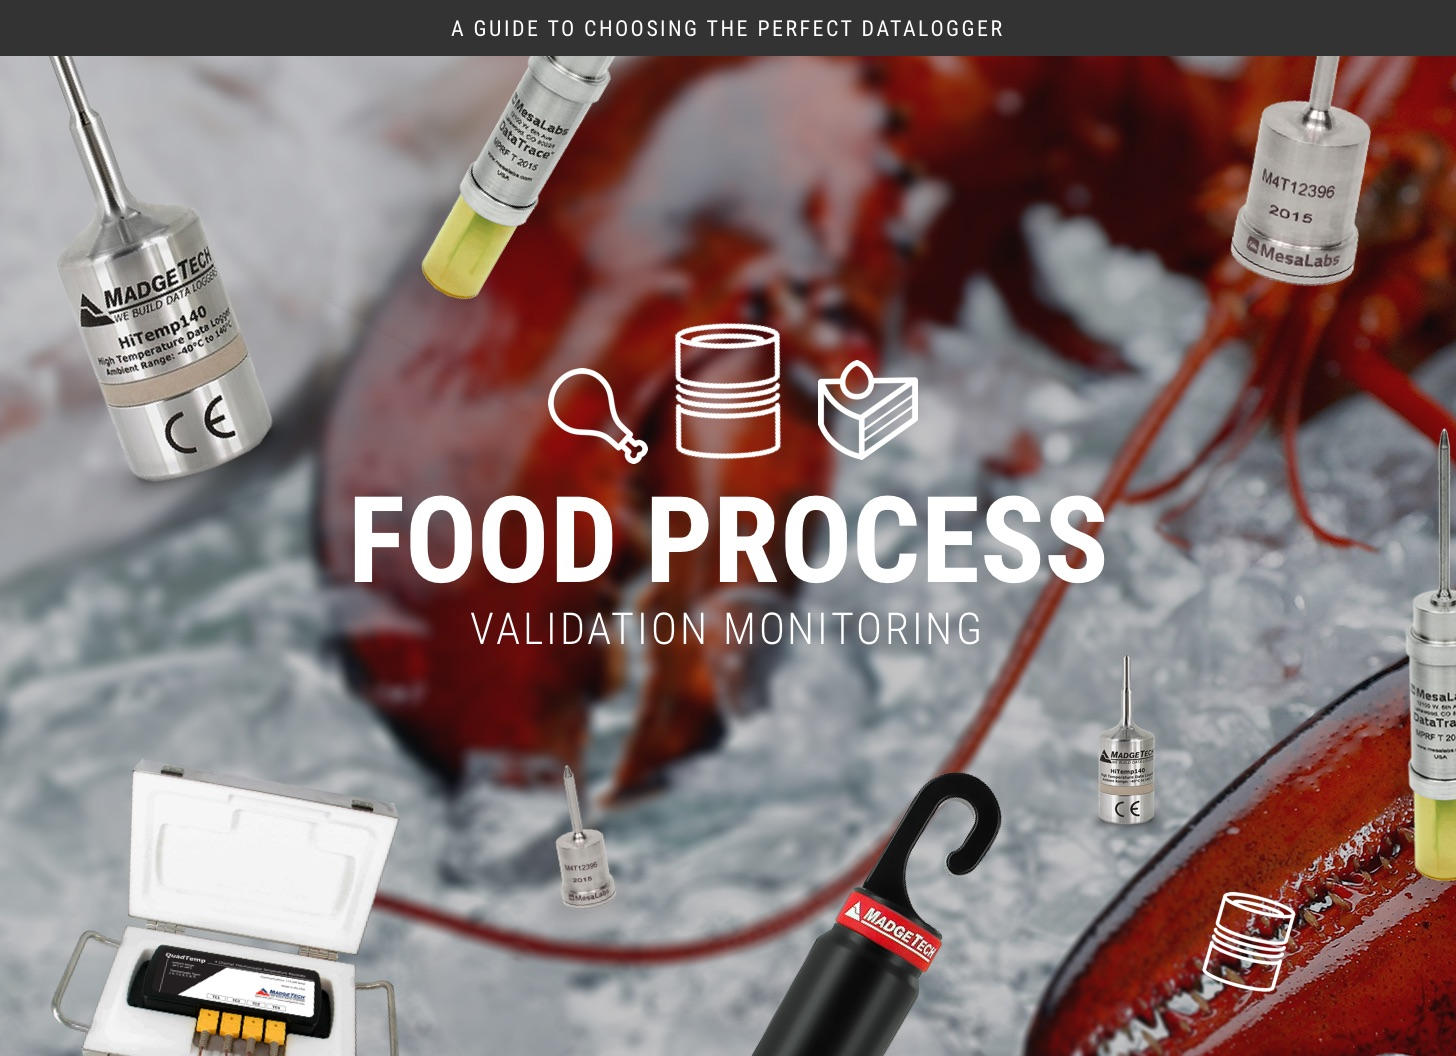 The Loggershop Guide to Data Loggers for Food Process Monitoring